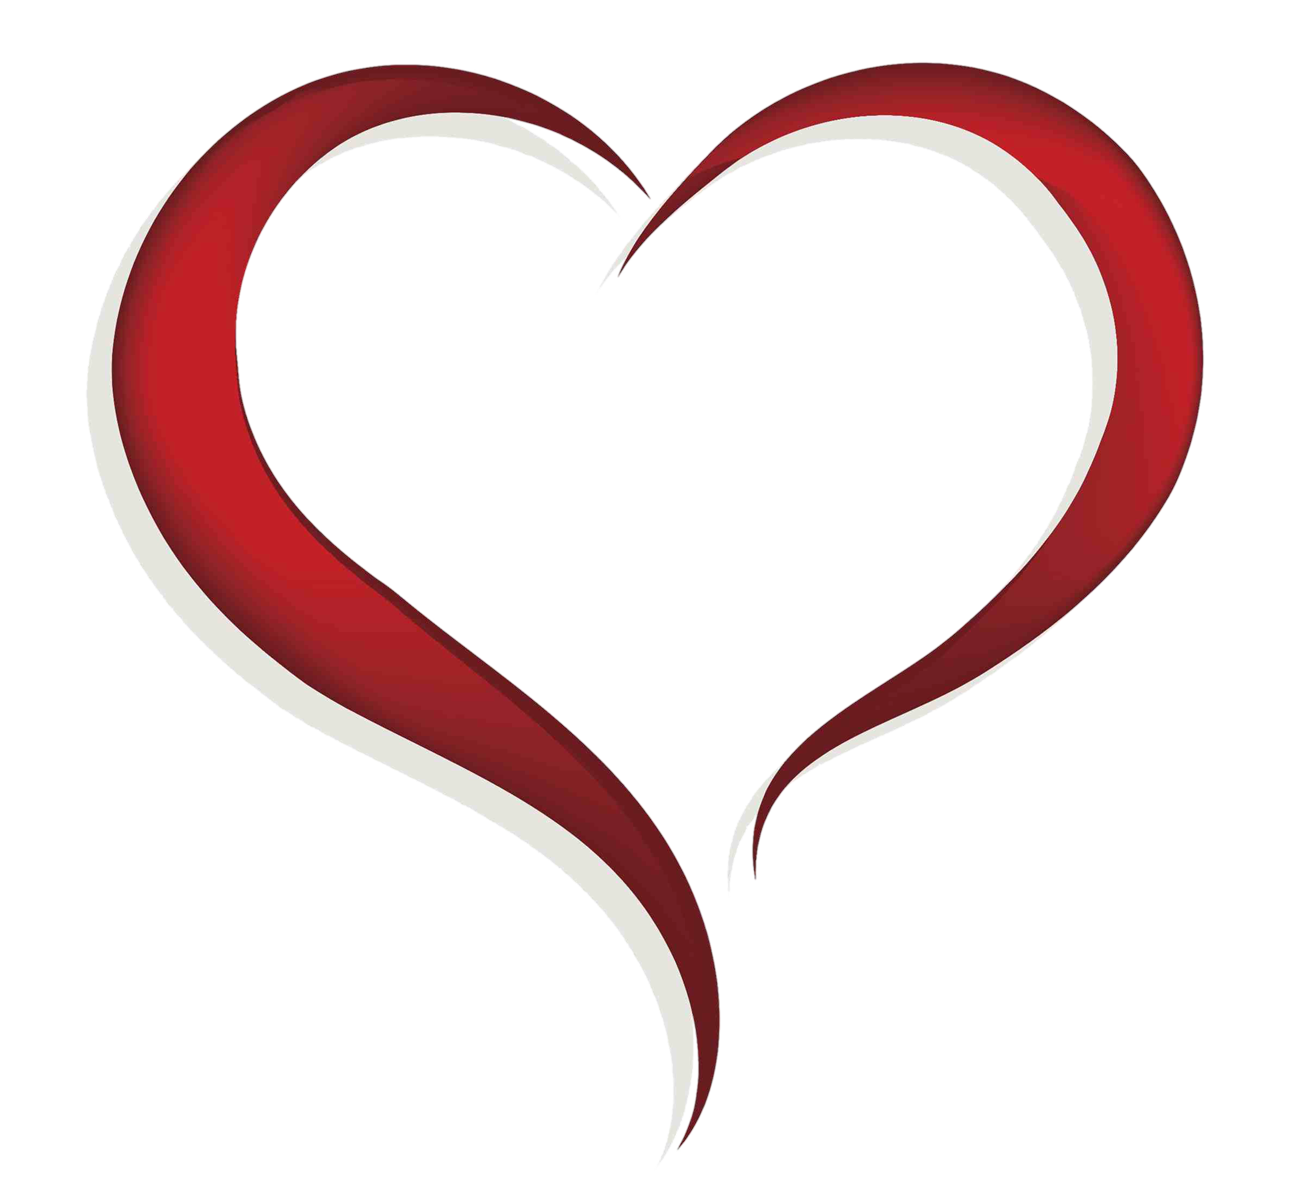 Heart clipart png. Home objects image transparent